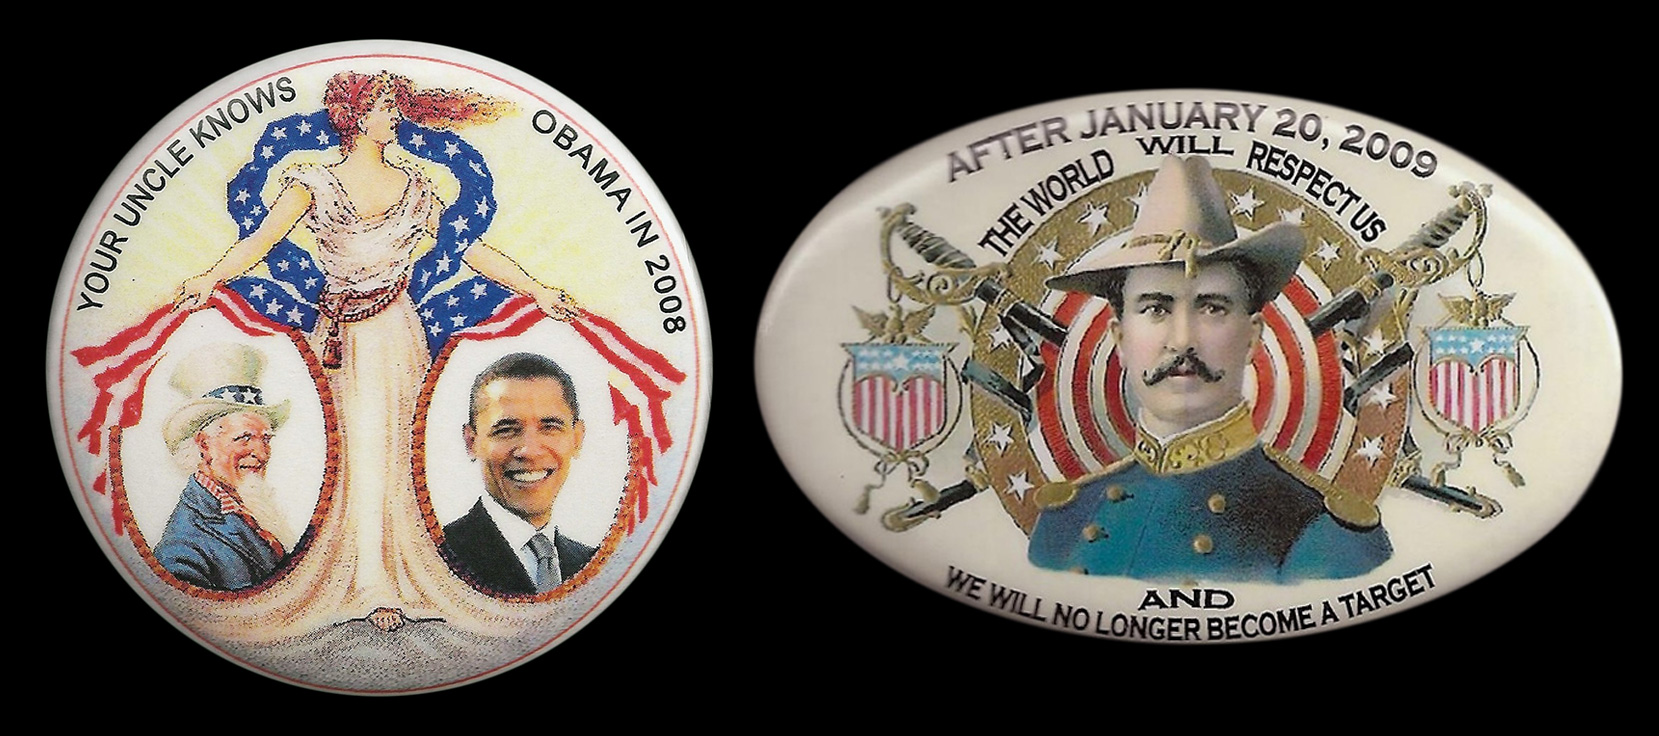 Two buttons designed by Guardfrog's Bob Alexander in 2008 with antique-looking imagery. (Click to enlarge.)